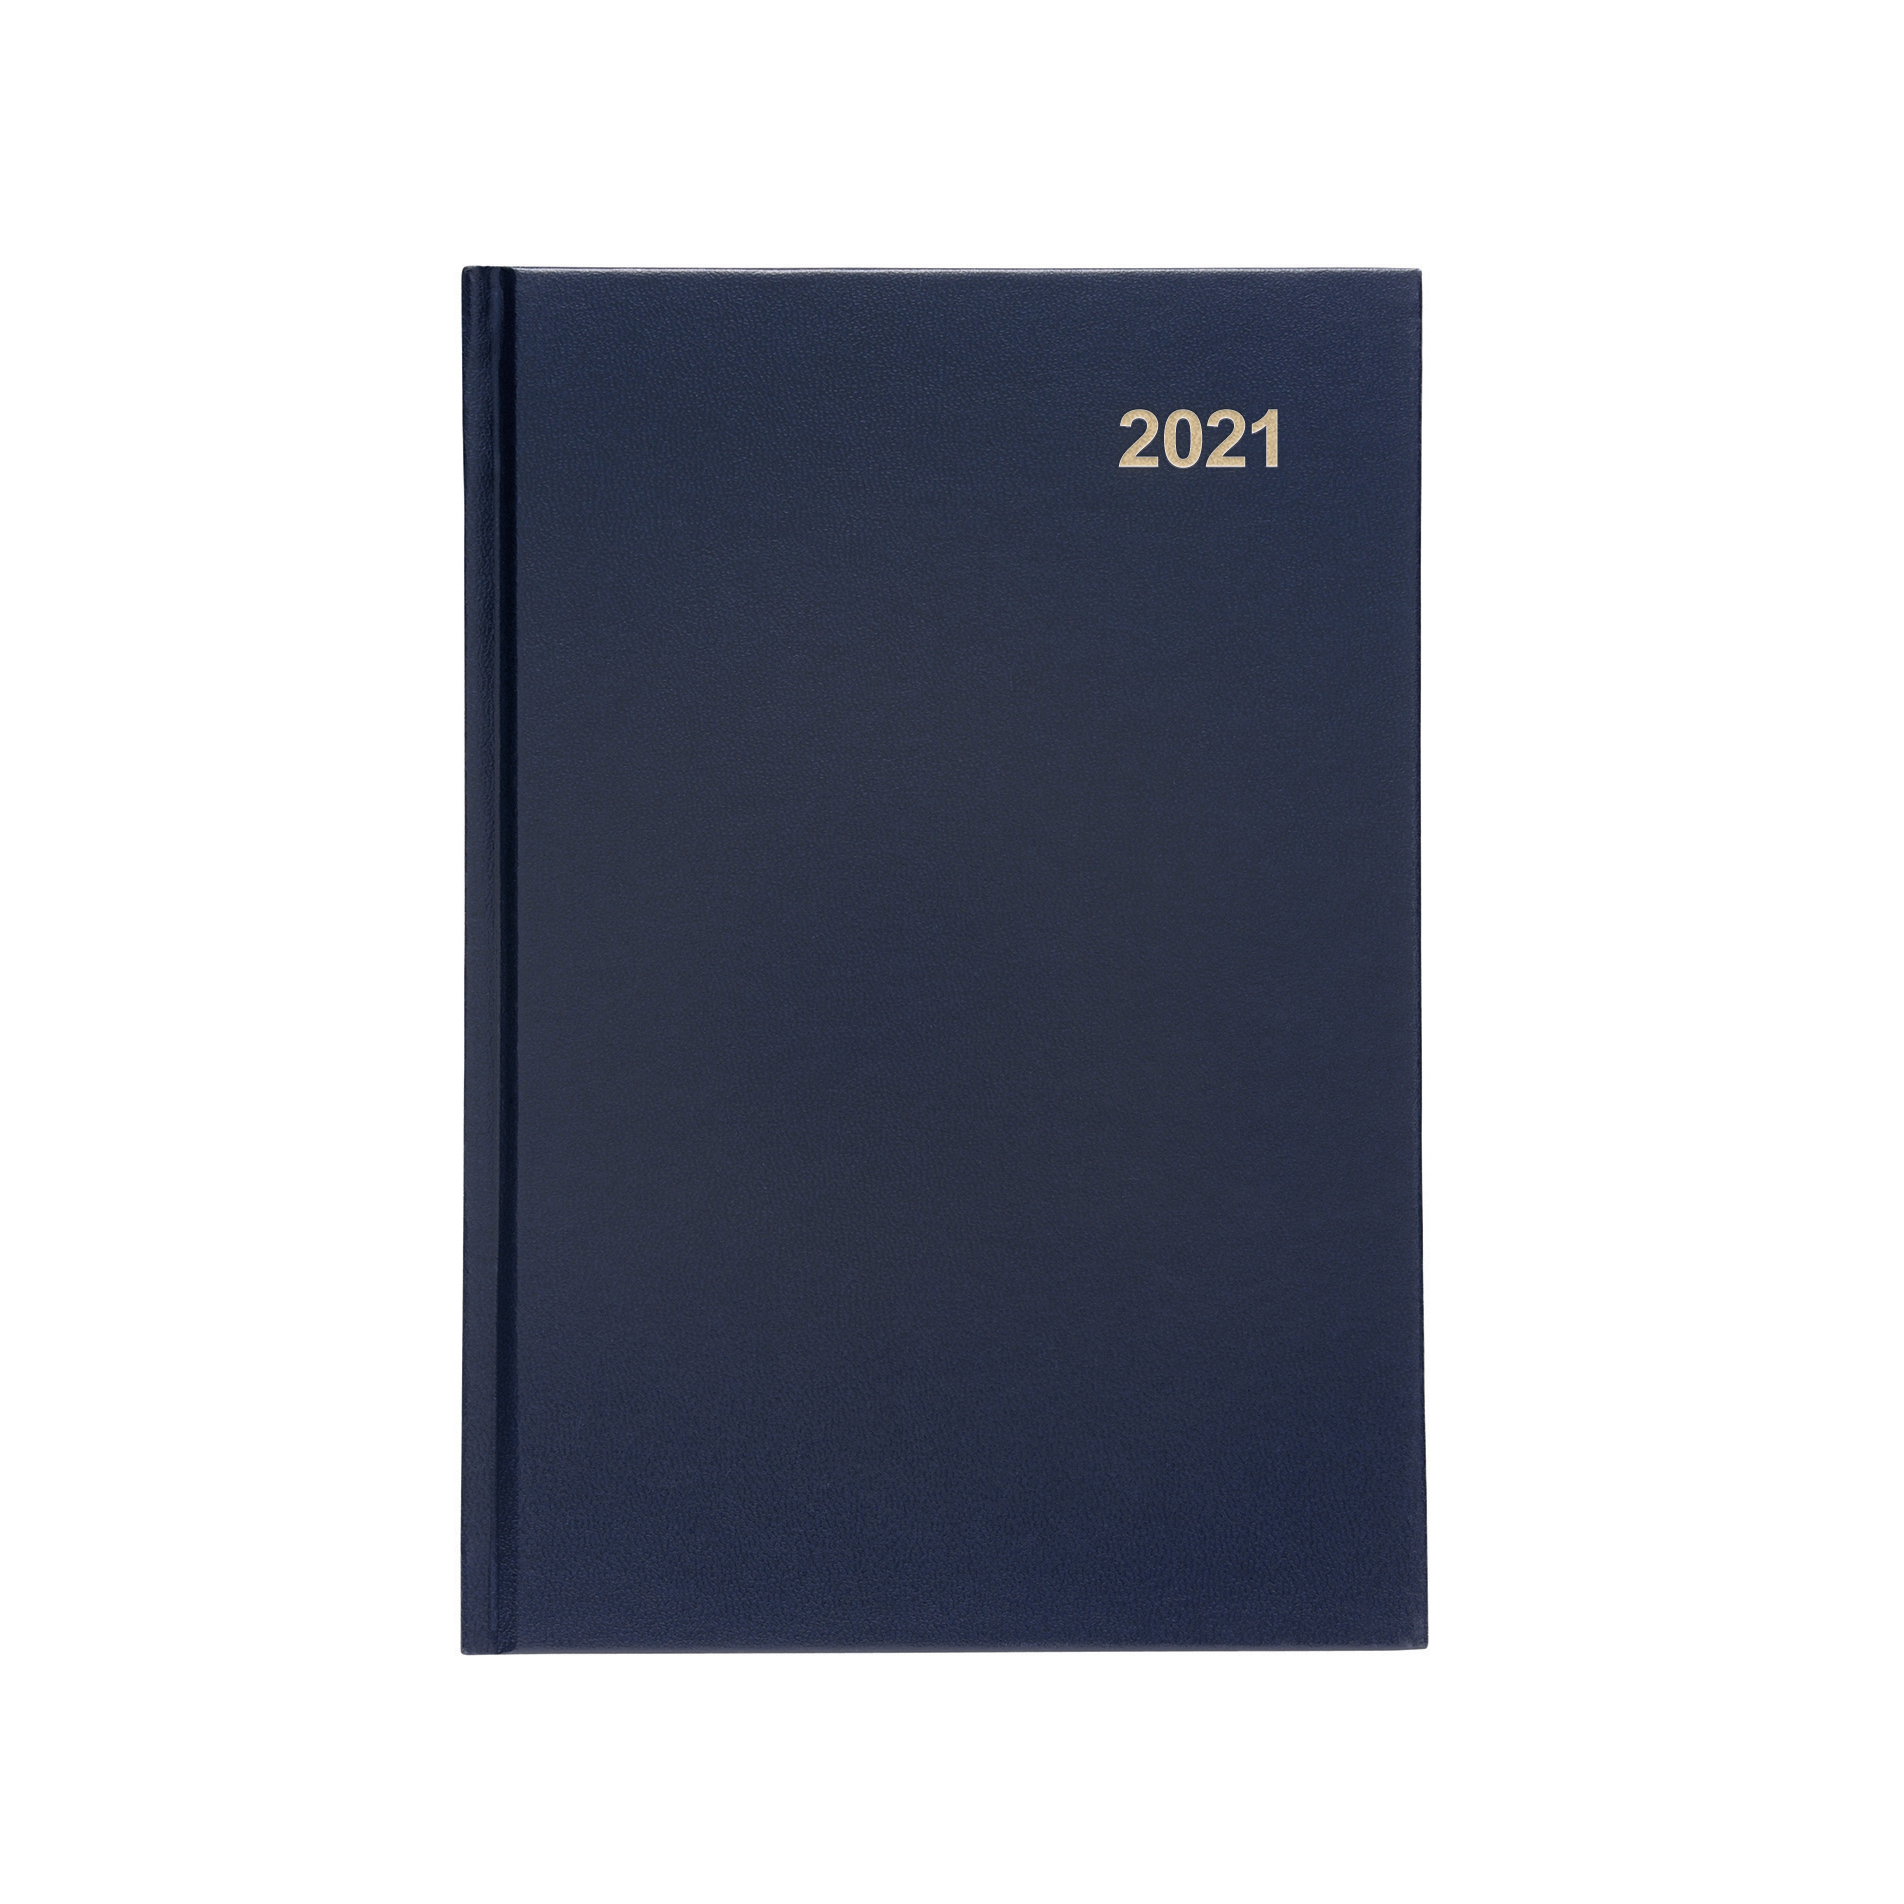 Diaries or refills 5 Star Office 2021 Diary Week to View Casebound and Sewn Vinyl Coated Board A5 210x148mm Blue